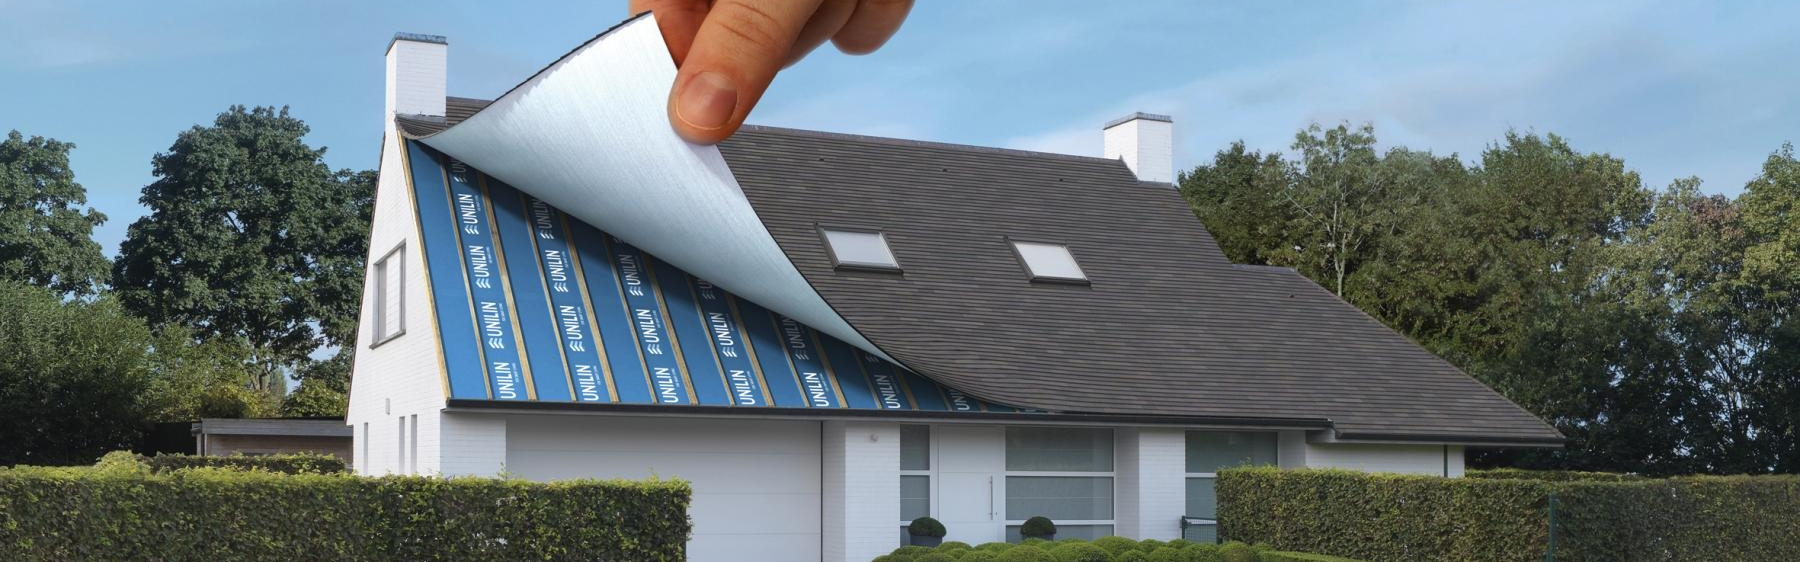 house-insulation-services-qlook_h500_cropped_1.jpg